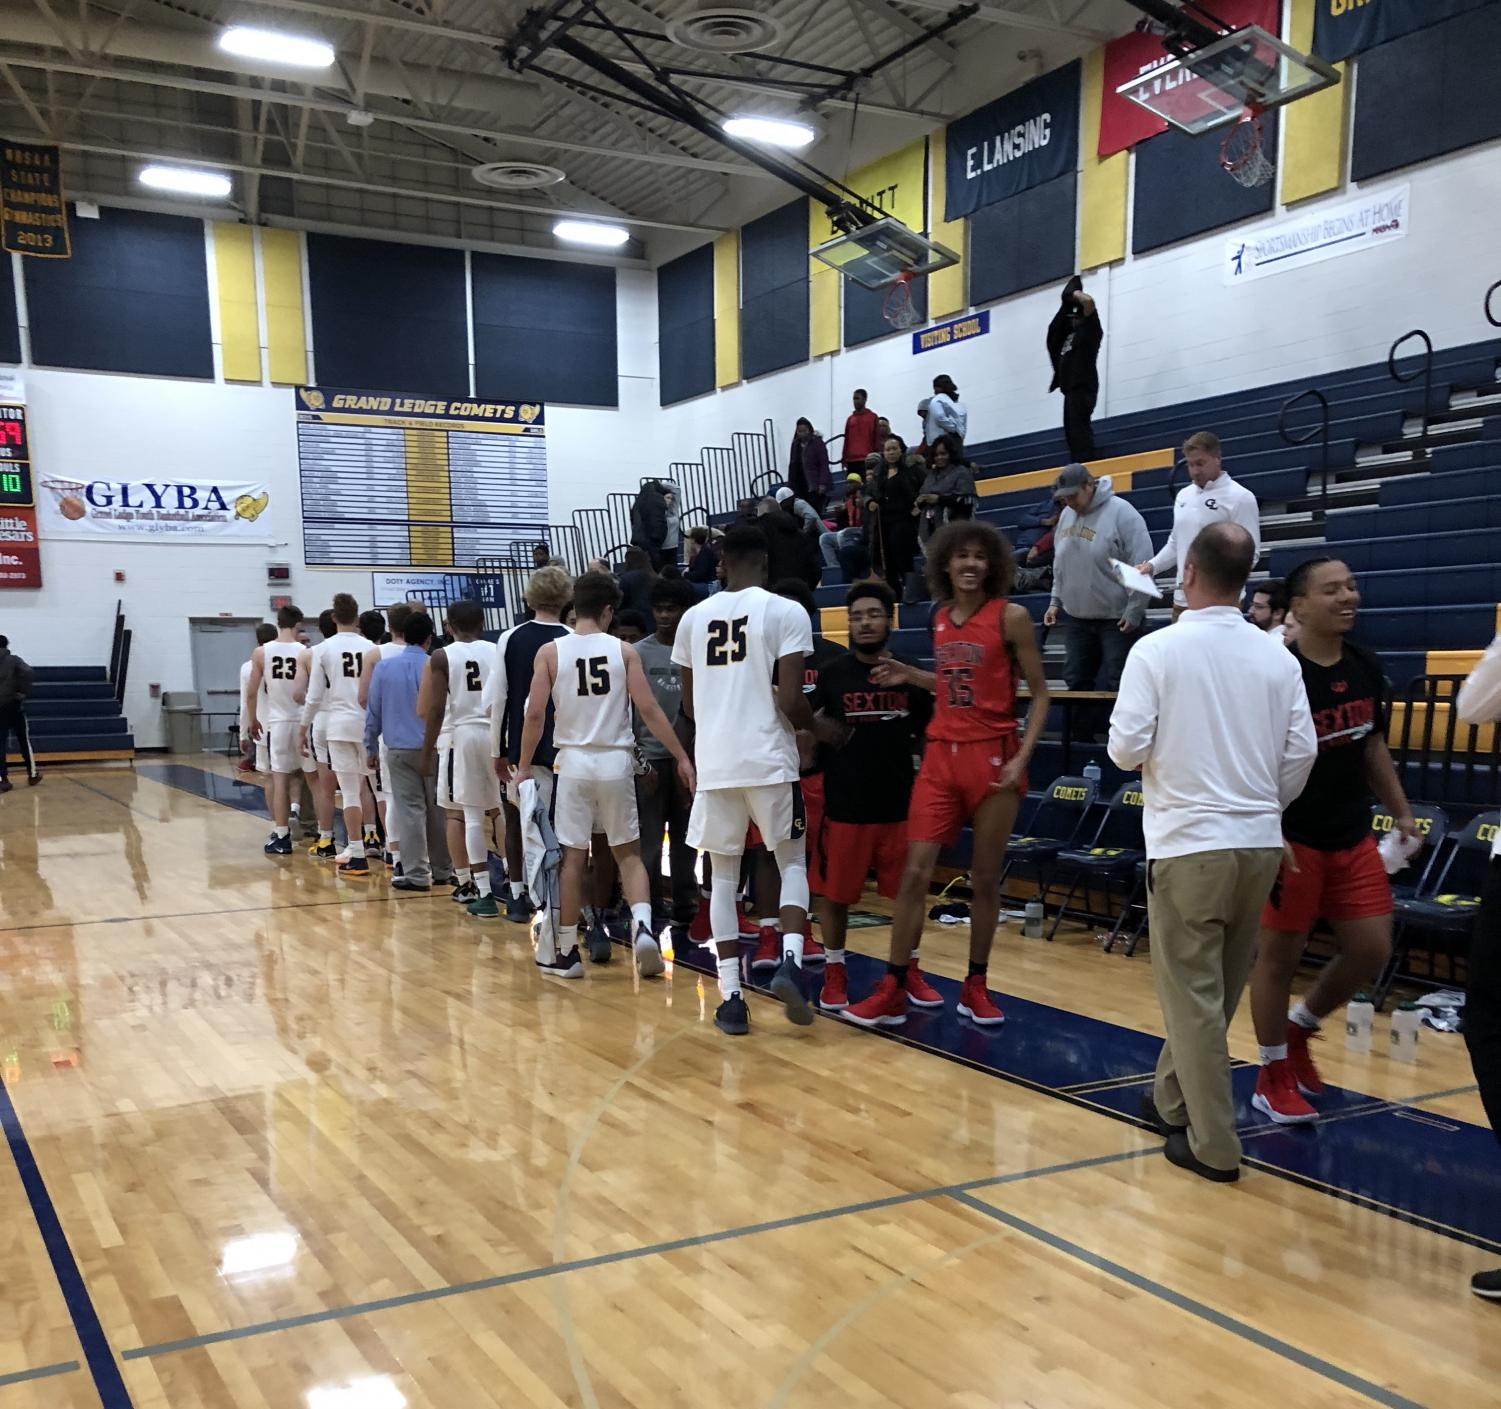 Grand Ledge shakes hands with the Sexton Big Reds after a 76-59 victory on December 11. The Comets are hoping to ride this wave of momentum heading into the bulk of conference play.